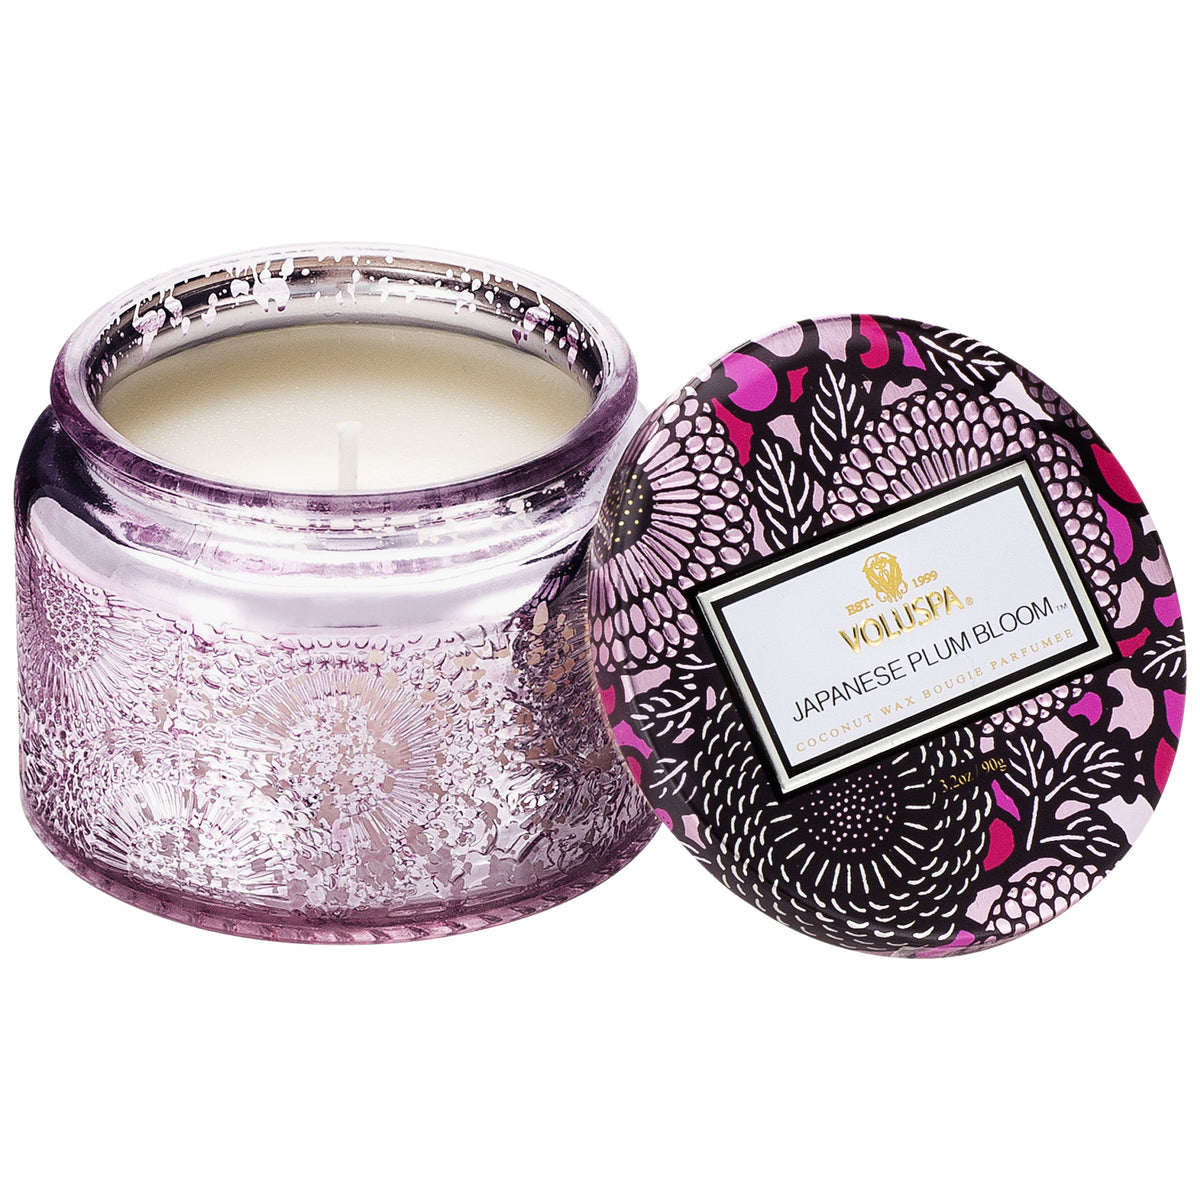 Japanese Plum Bloom - Petite Jar Candle - 2